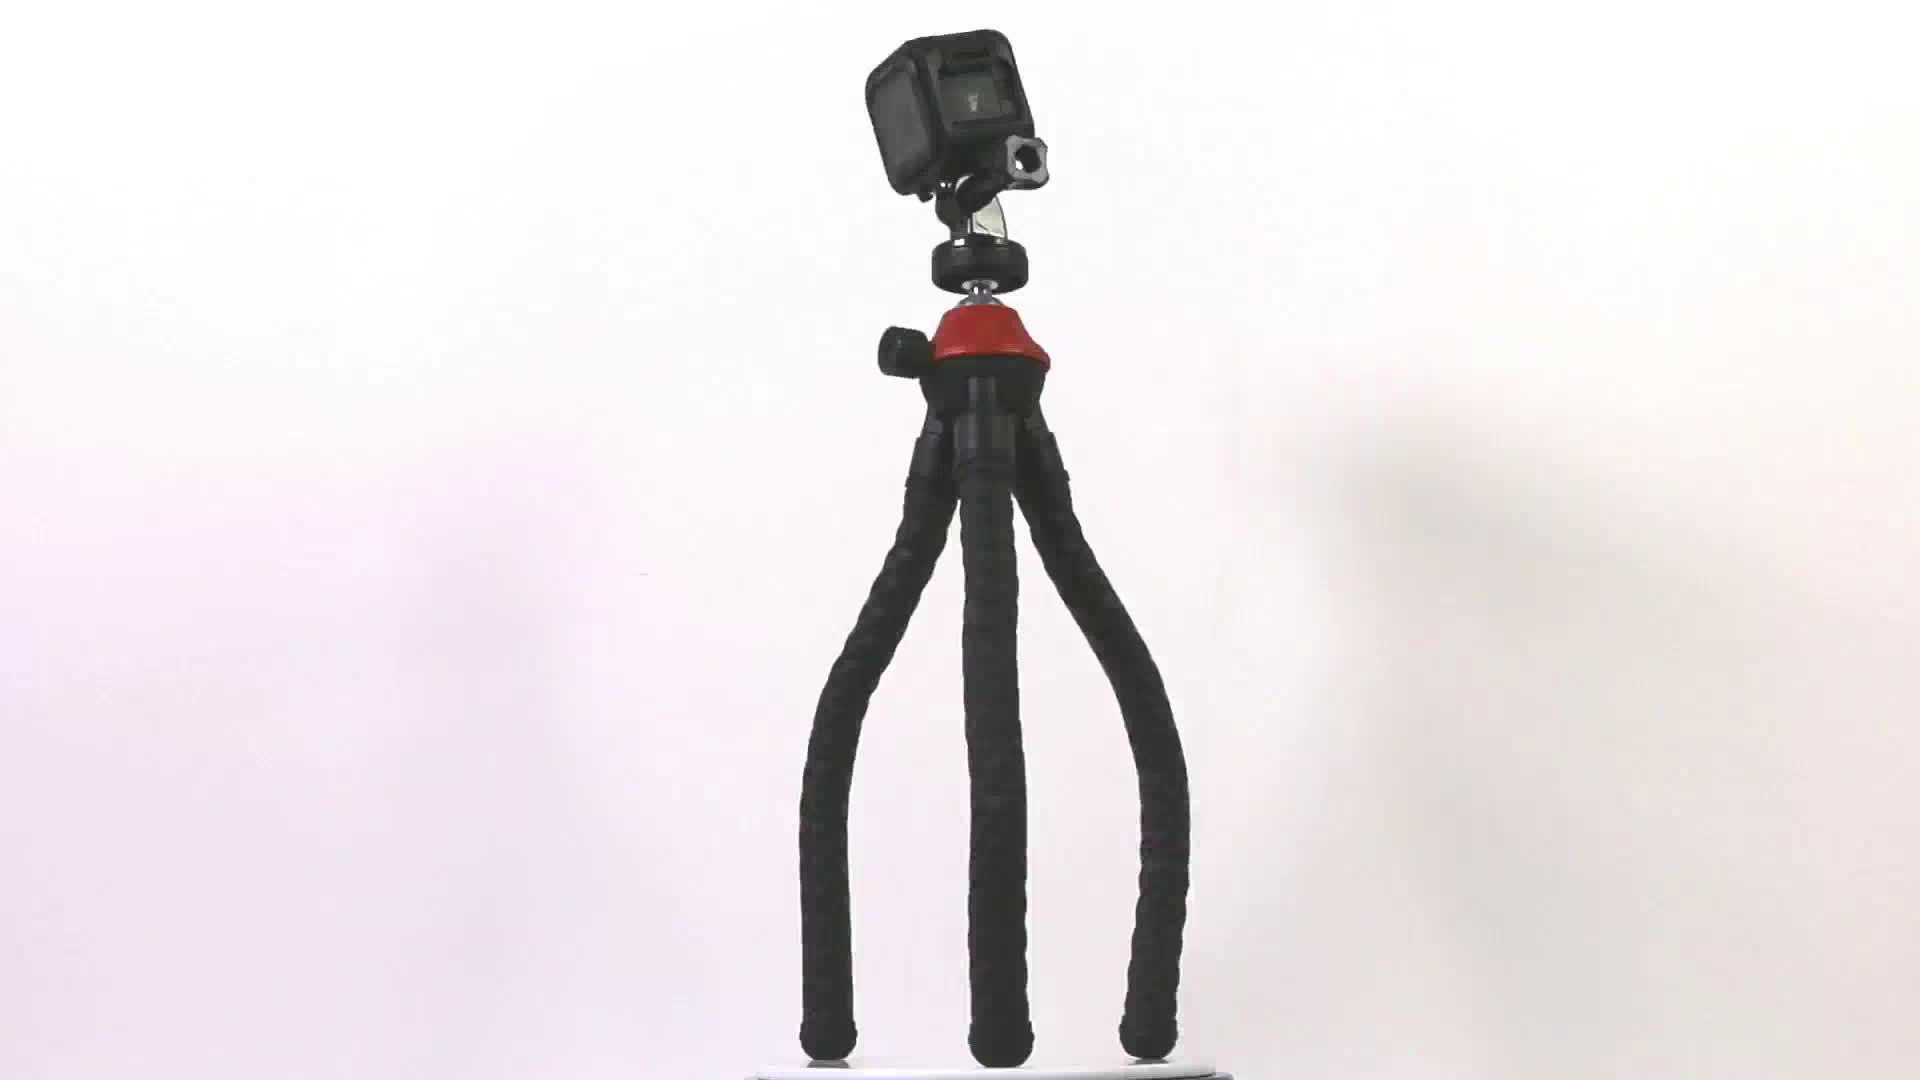 Sunrise 360 Degree Rotation 5kg Load Mini Portable Flexible Octopus Mobile Phone Tripod for Outdoor Travel Selfie